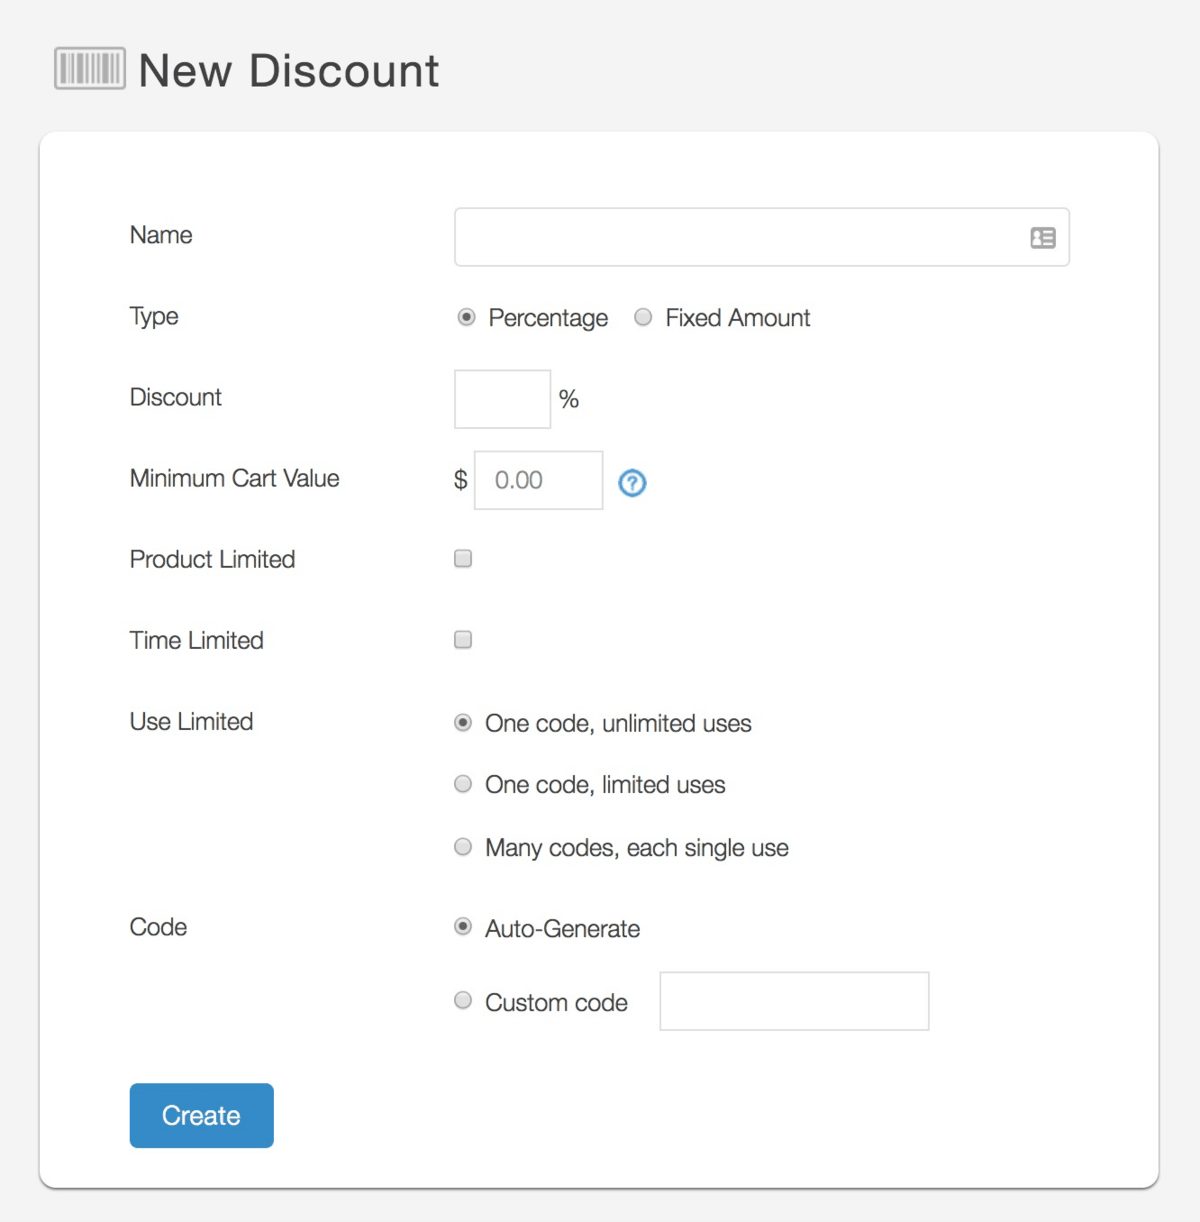 Shopping Carts New Discount Offer